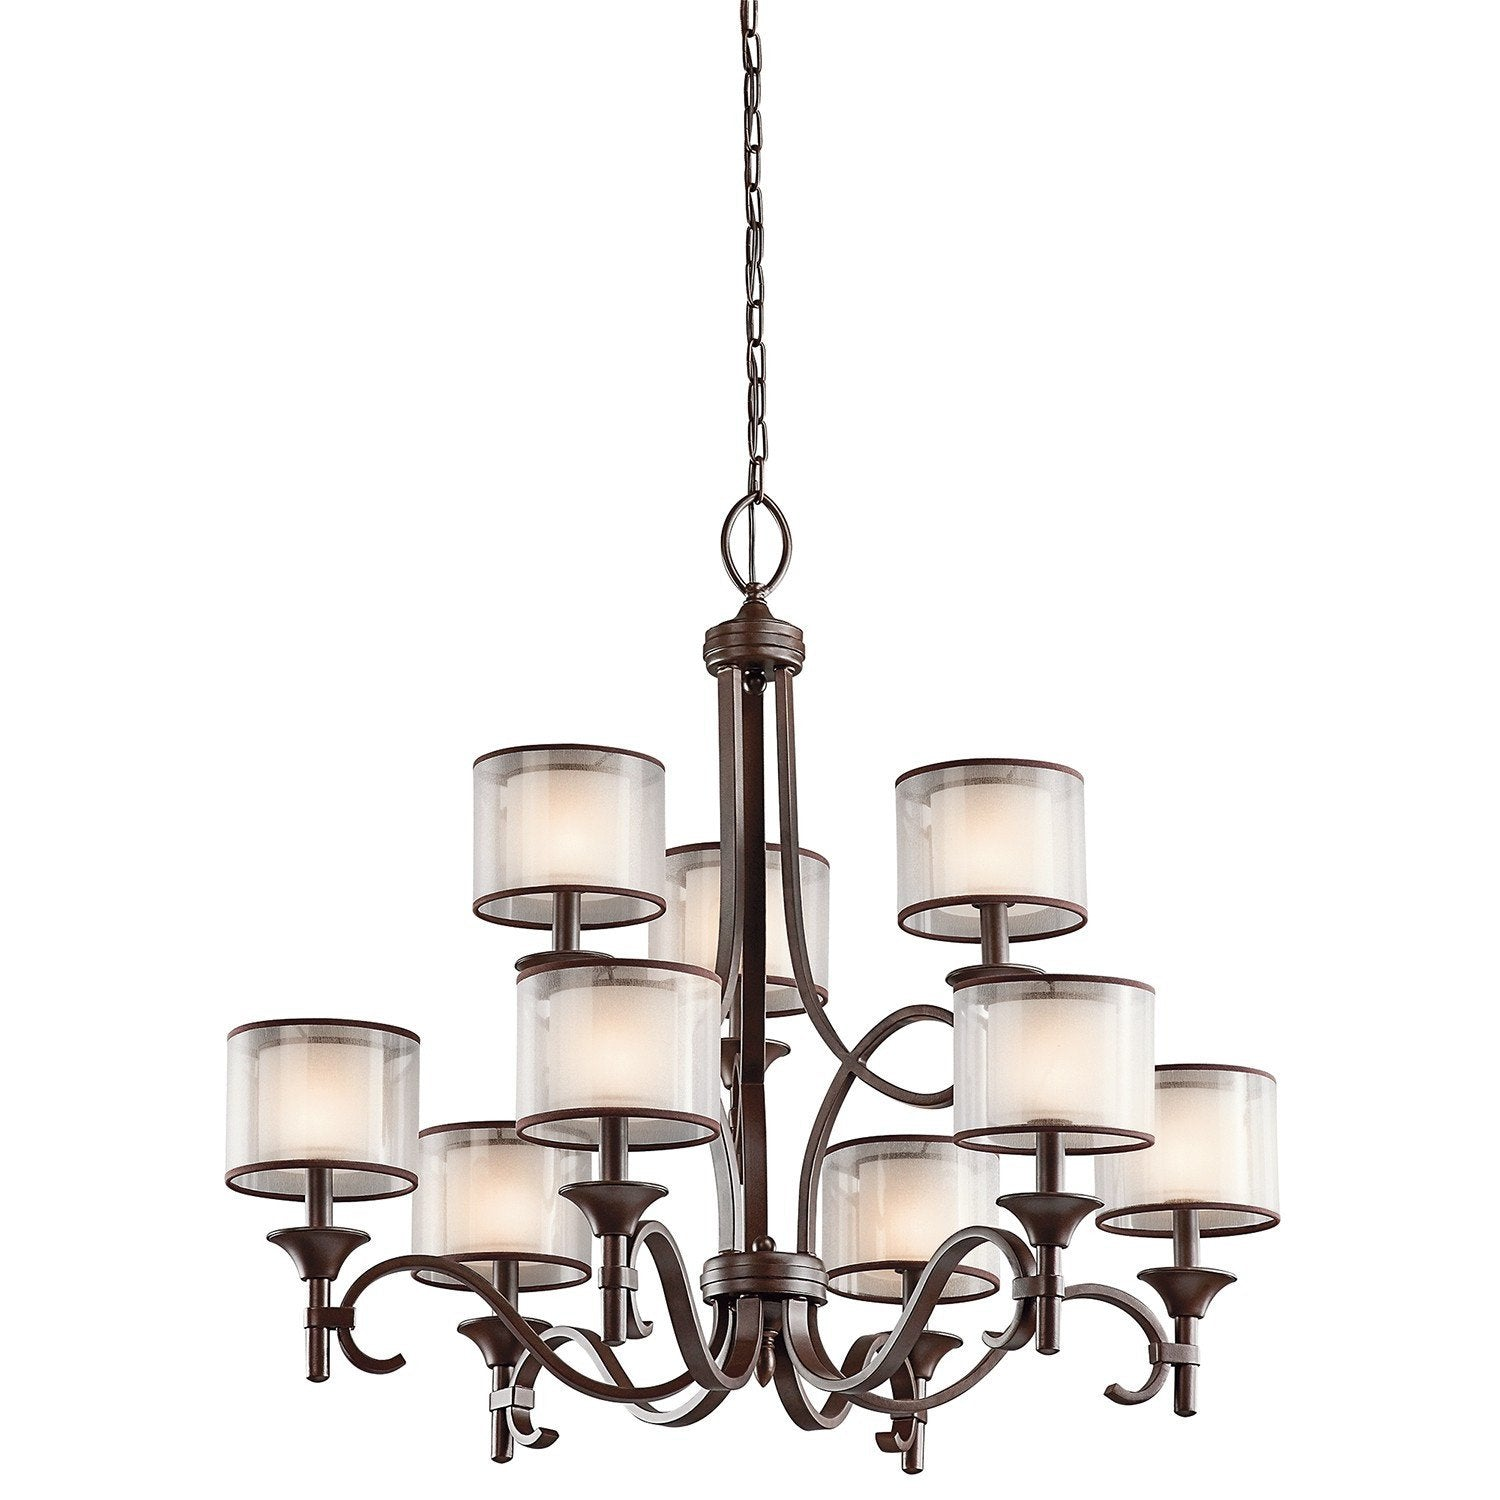 Kichler Lacey 9 Light Chandelier - London Lighting - 1